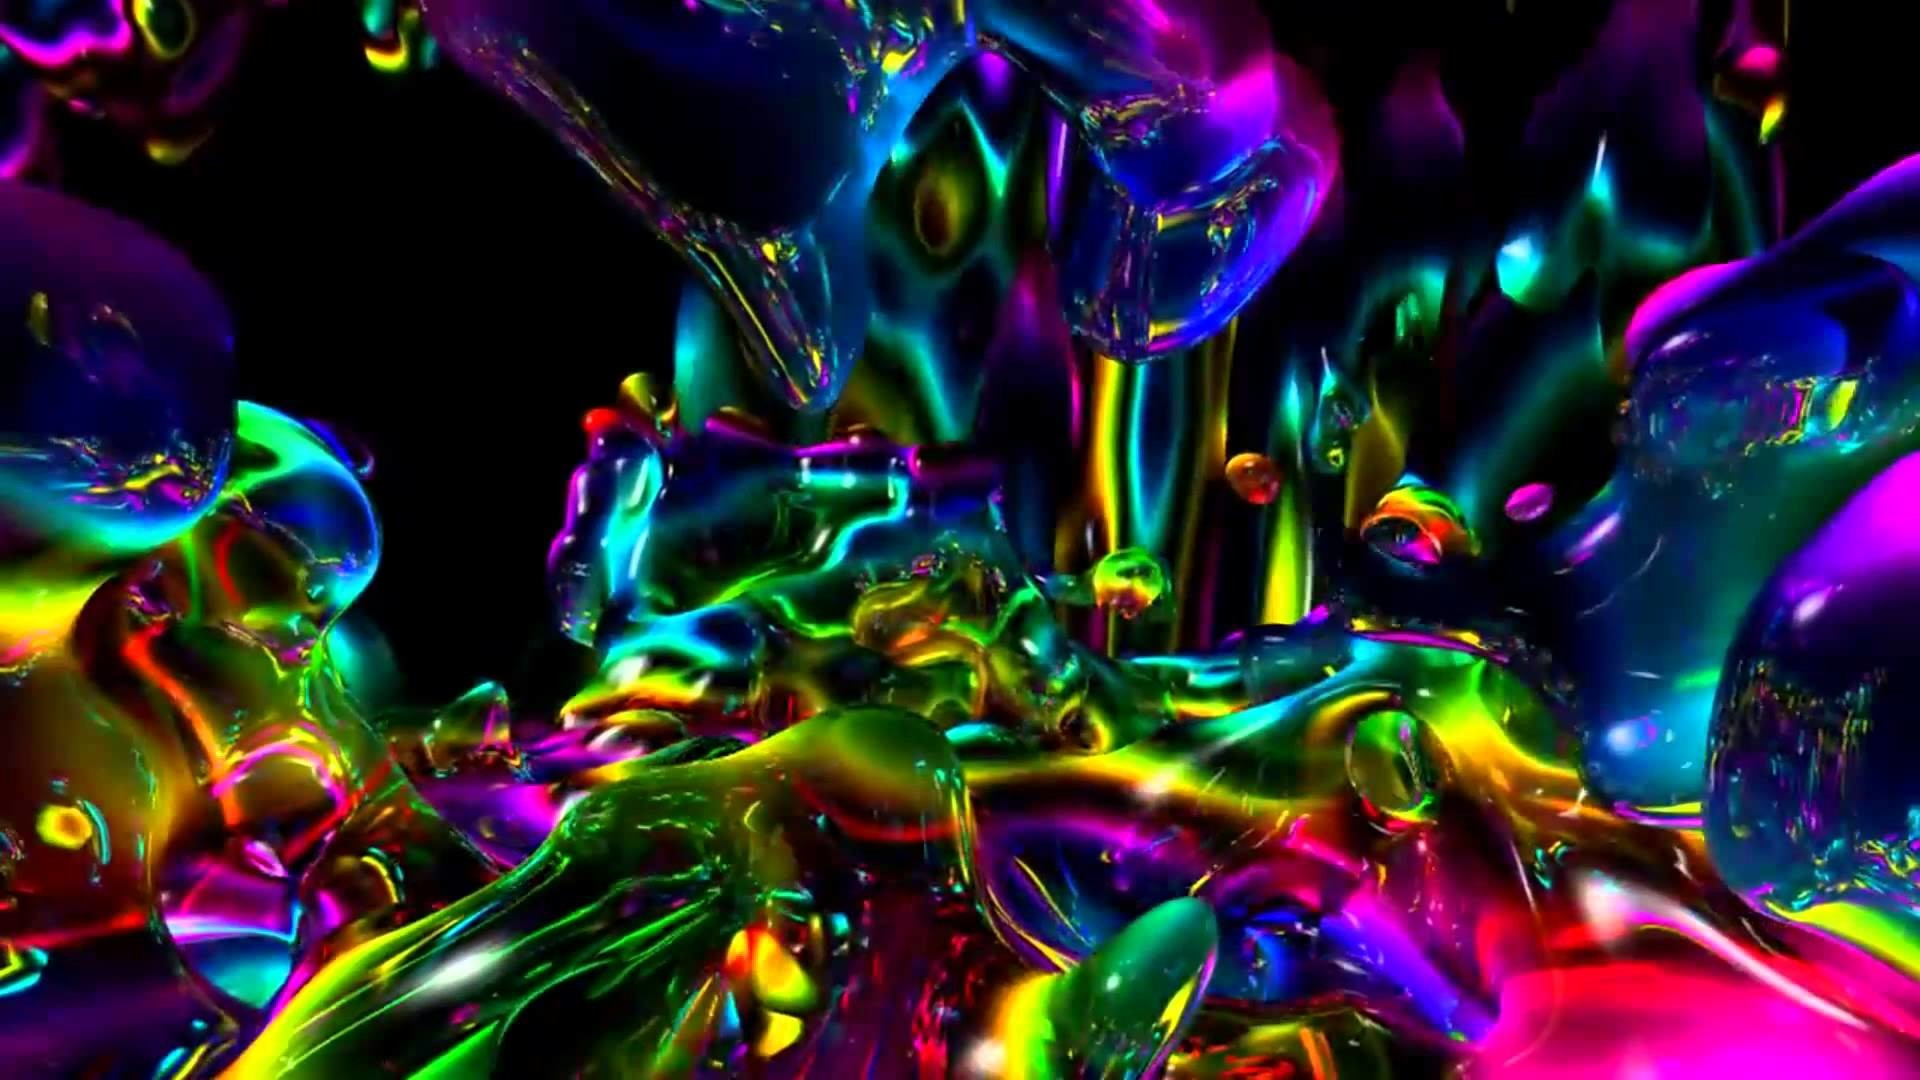 50 Trippy Background Wallpaper Psychedelic Wallpaper: Sick Trippy Backgrounds ·①